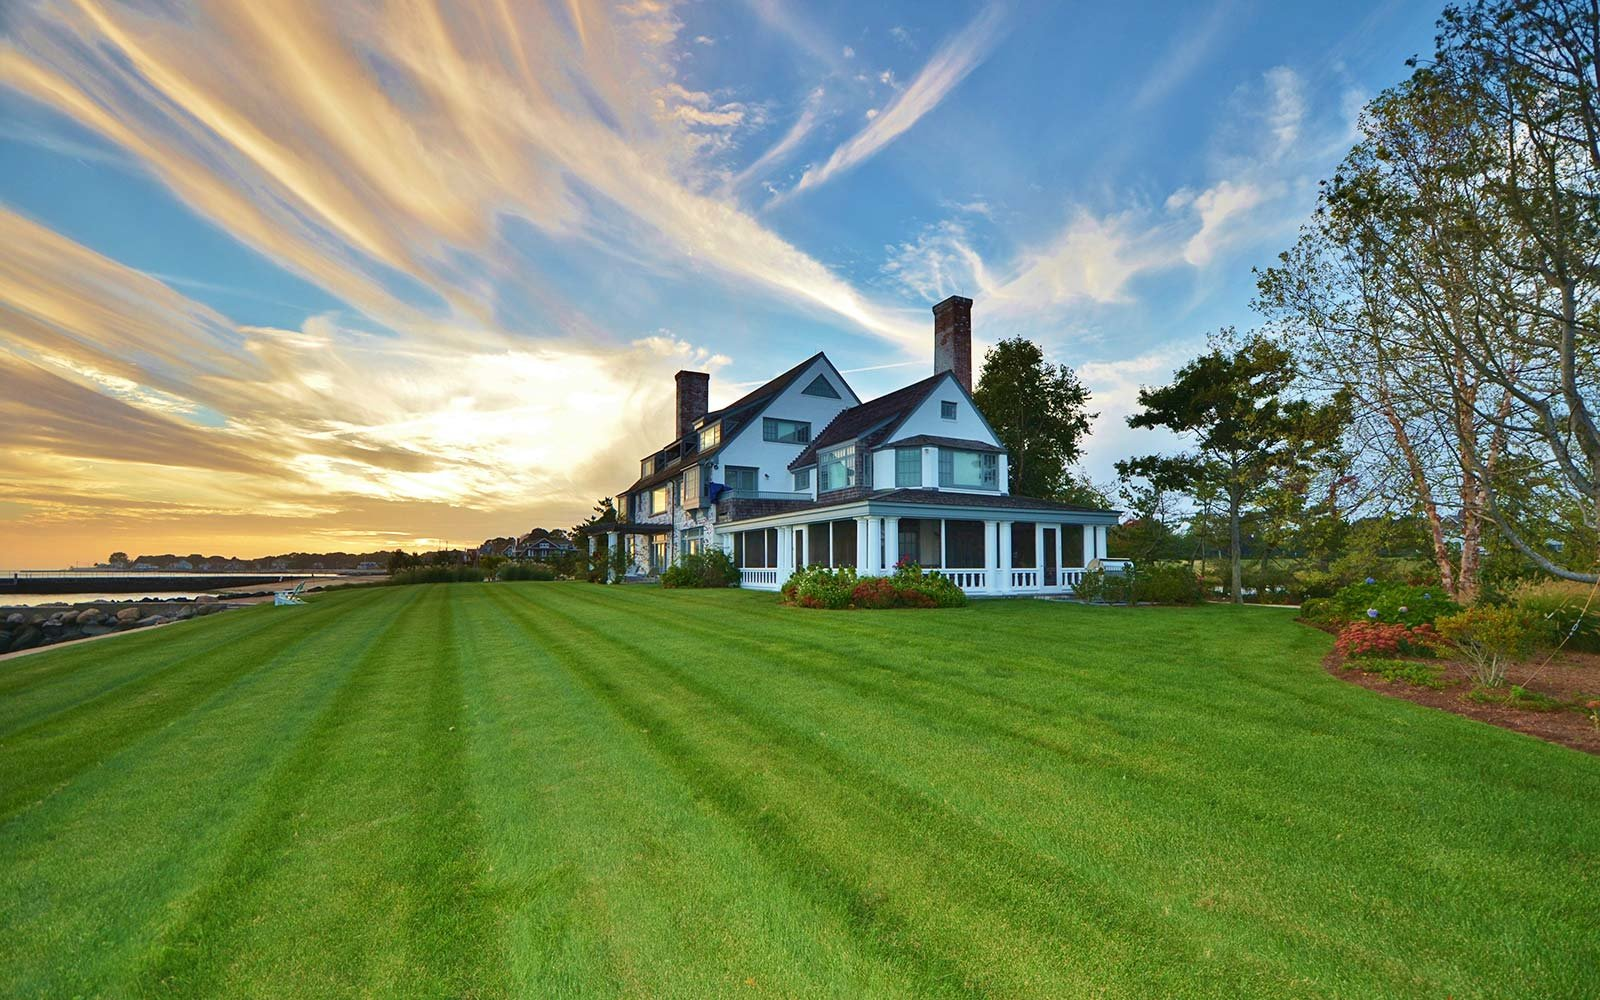 Katharine Hepburn's Connecticut summer home for sale